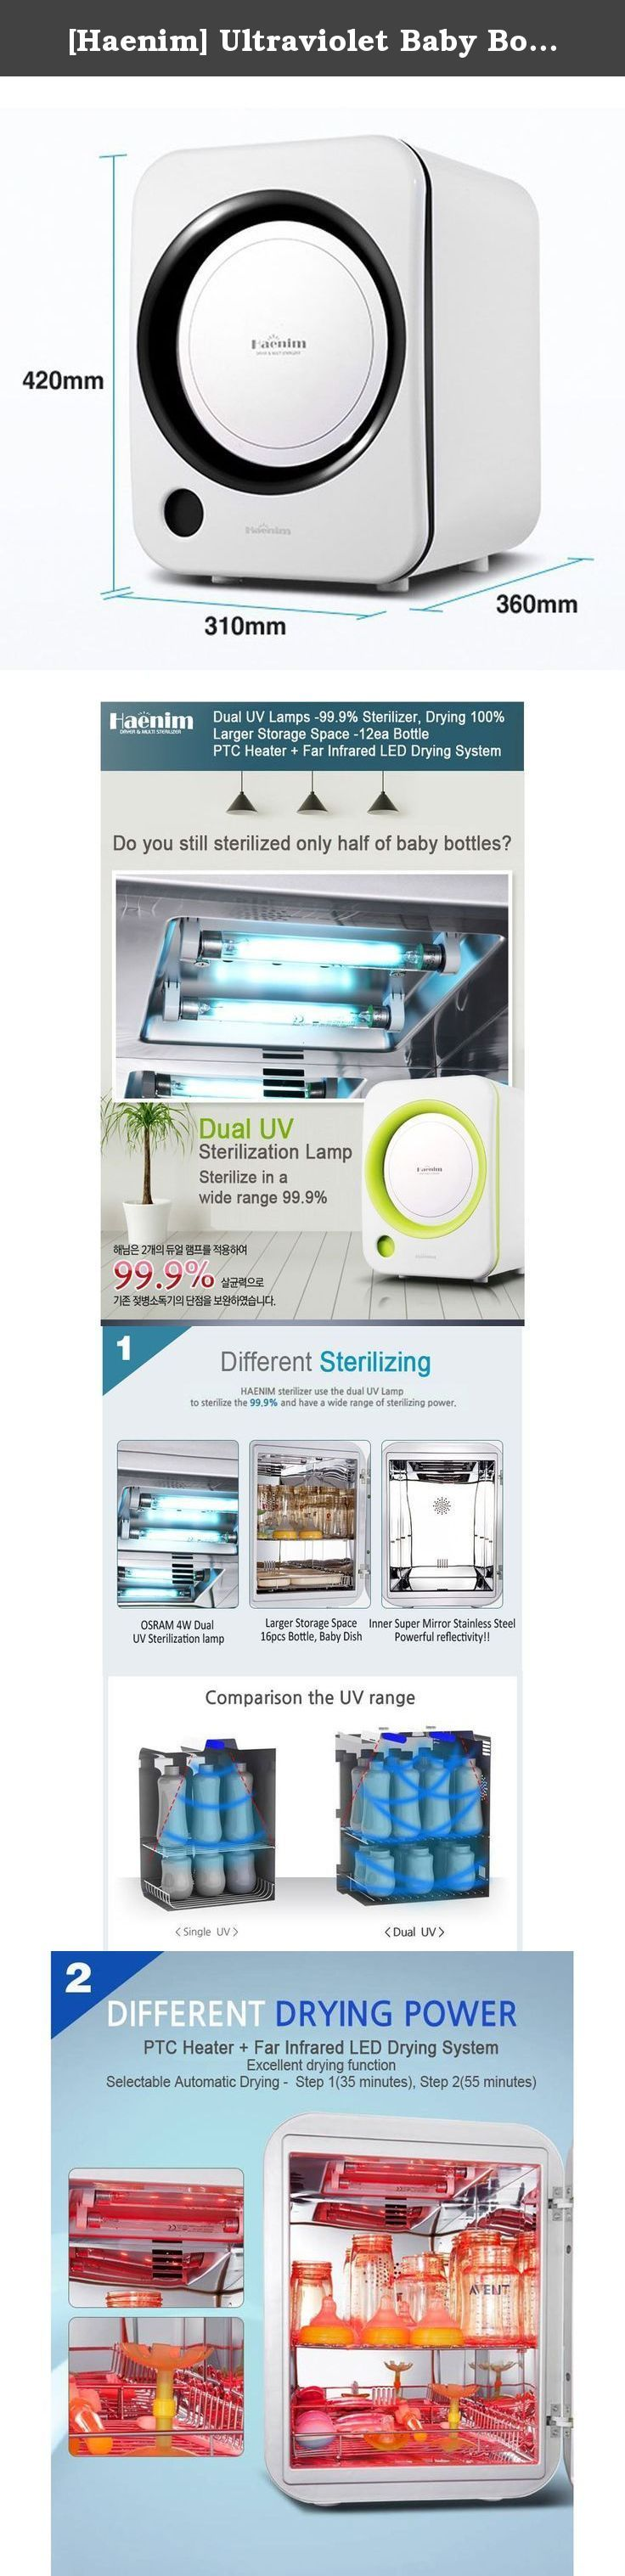 [Haenim] Ultraviolet Baby Bottle Sterilizer HN-01 Multi-Use Dryer 220V (black). Product Features Dual UV Lamps-99.9% Sterilizer,Drying 100%,Larger Storage Space-12ea Bottle and PTC Heater + Far infrared LED Drying System. Different Sterilizing-OSRAM 4W Dual UV Sterilization Lamp,Large Storage Space 16pcs Bottel,Baby Dish and Inner Super Mirron Stainless Steel Powerful Reflictitivity. Different Drying Power- Excellent Drying Function,Selectable Automatic Drying - Step 1 (35minutes,) Step2…